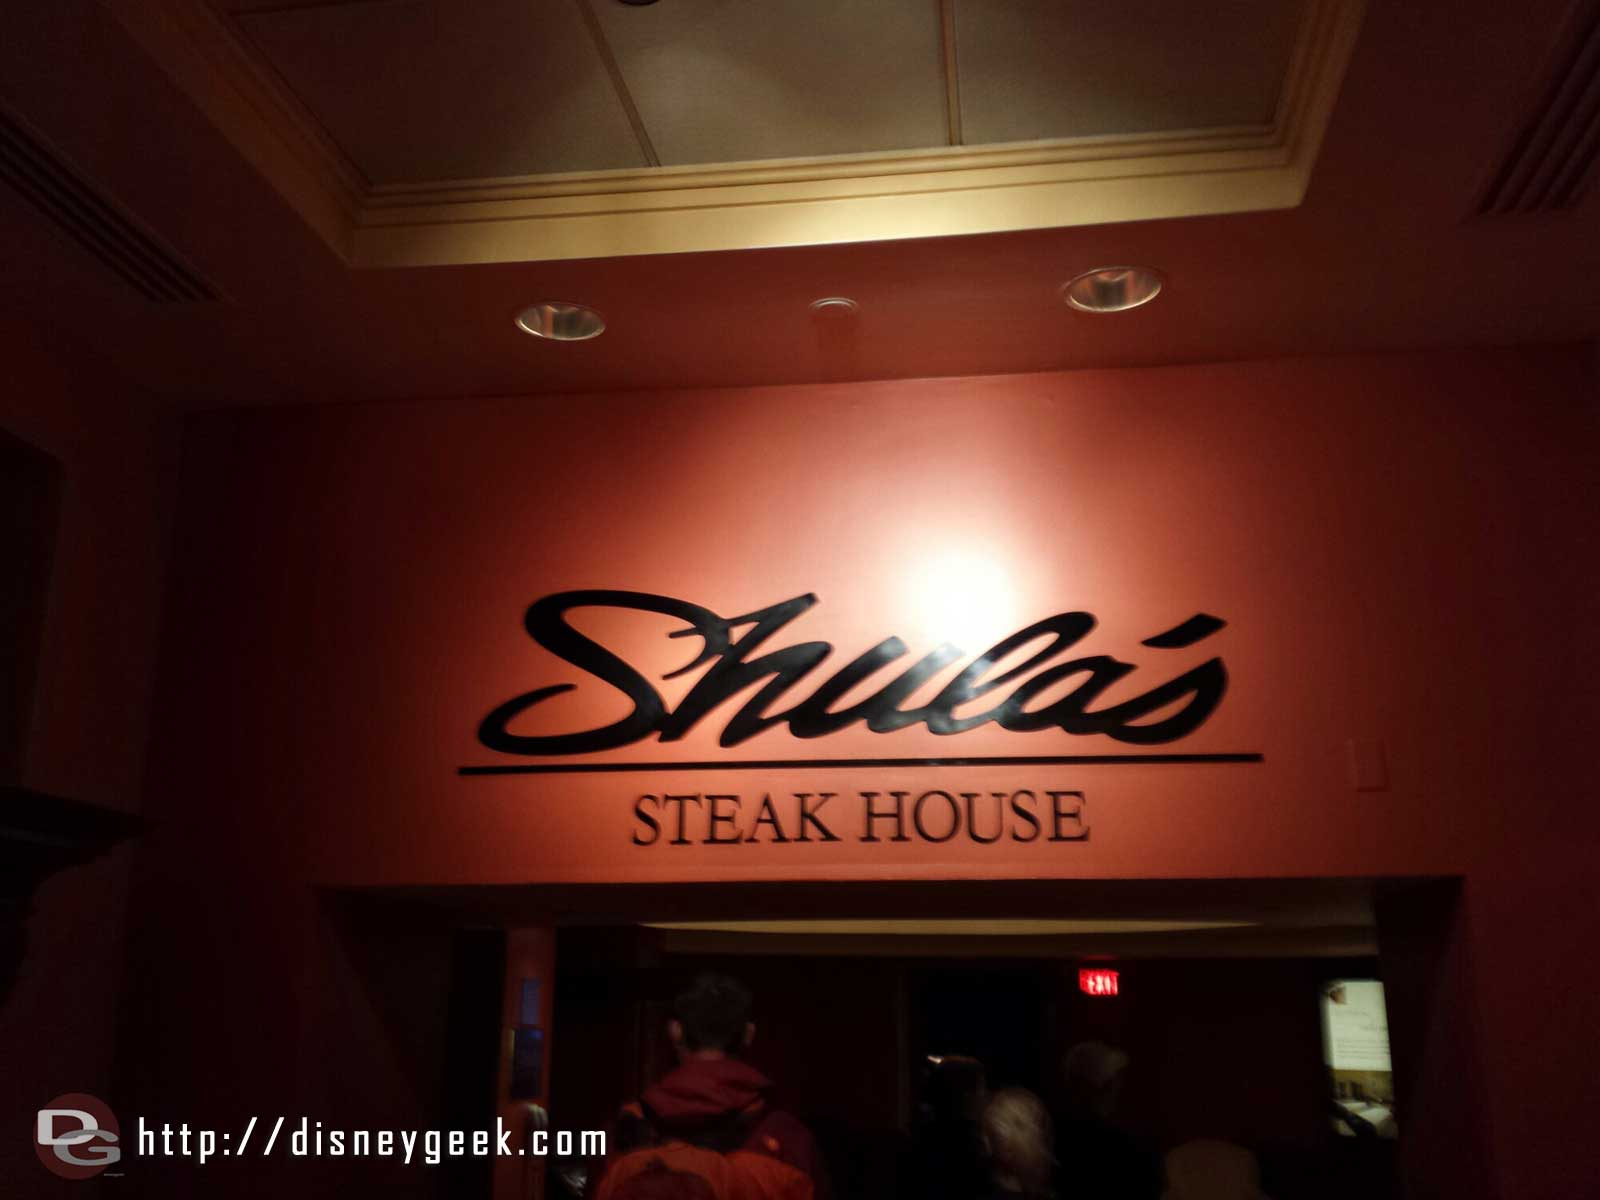 Made it Shula's for dinner